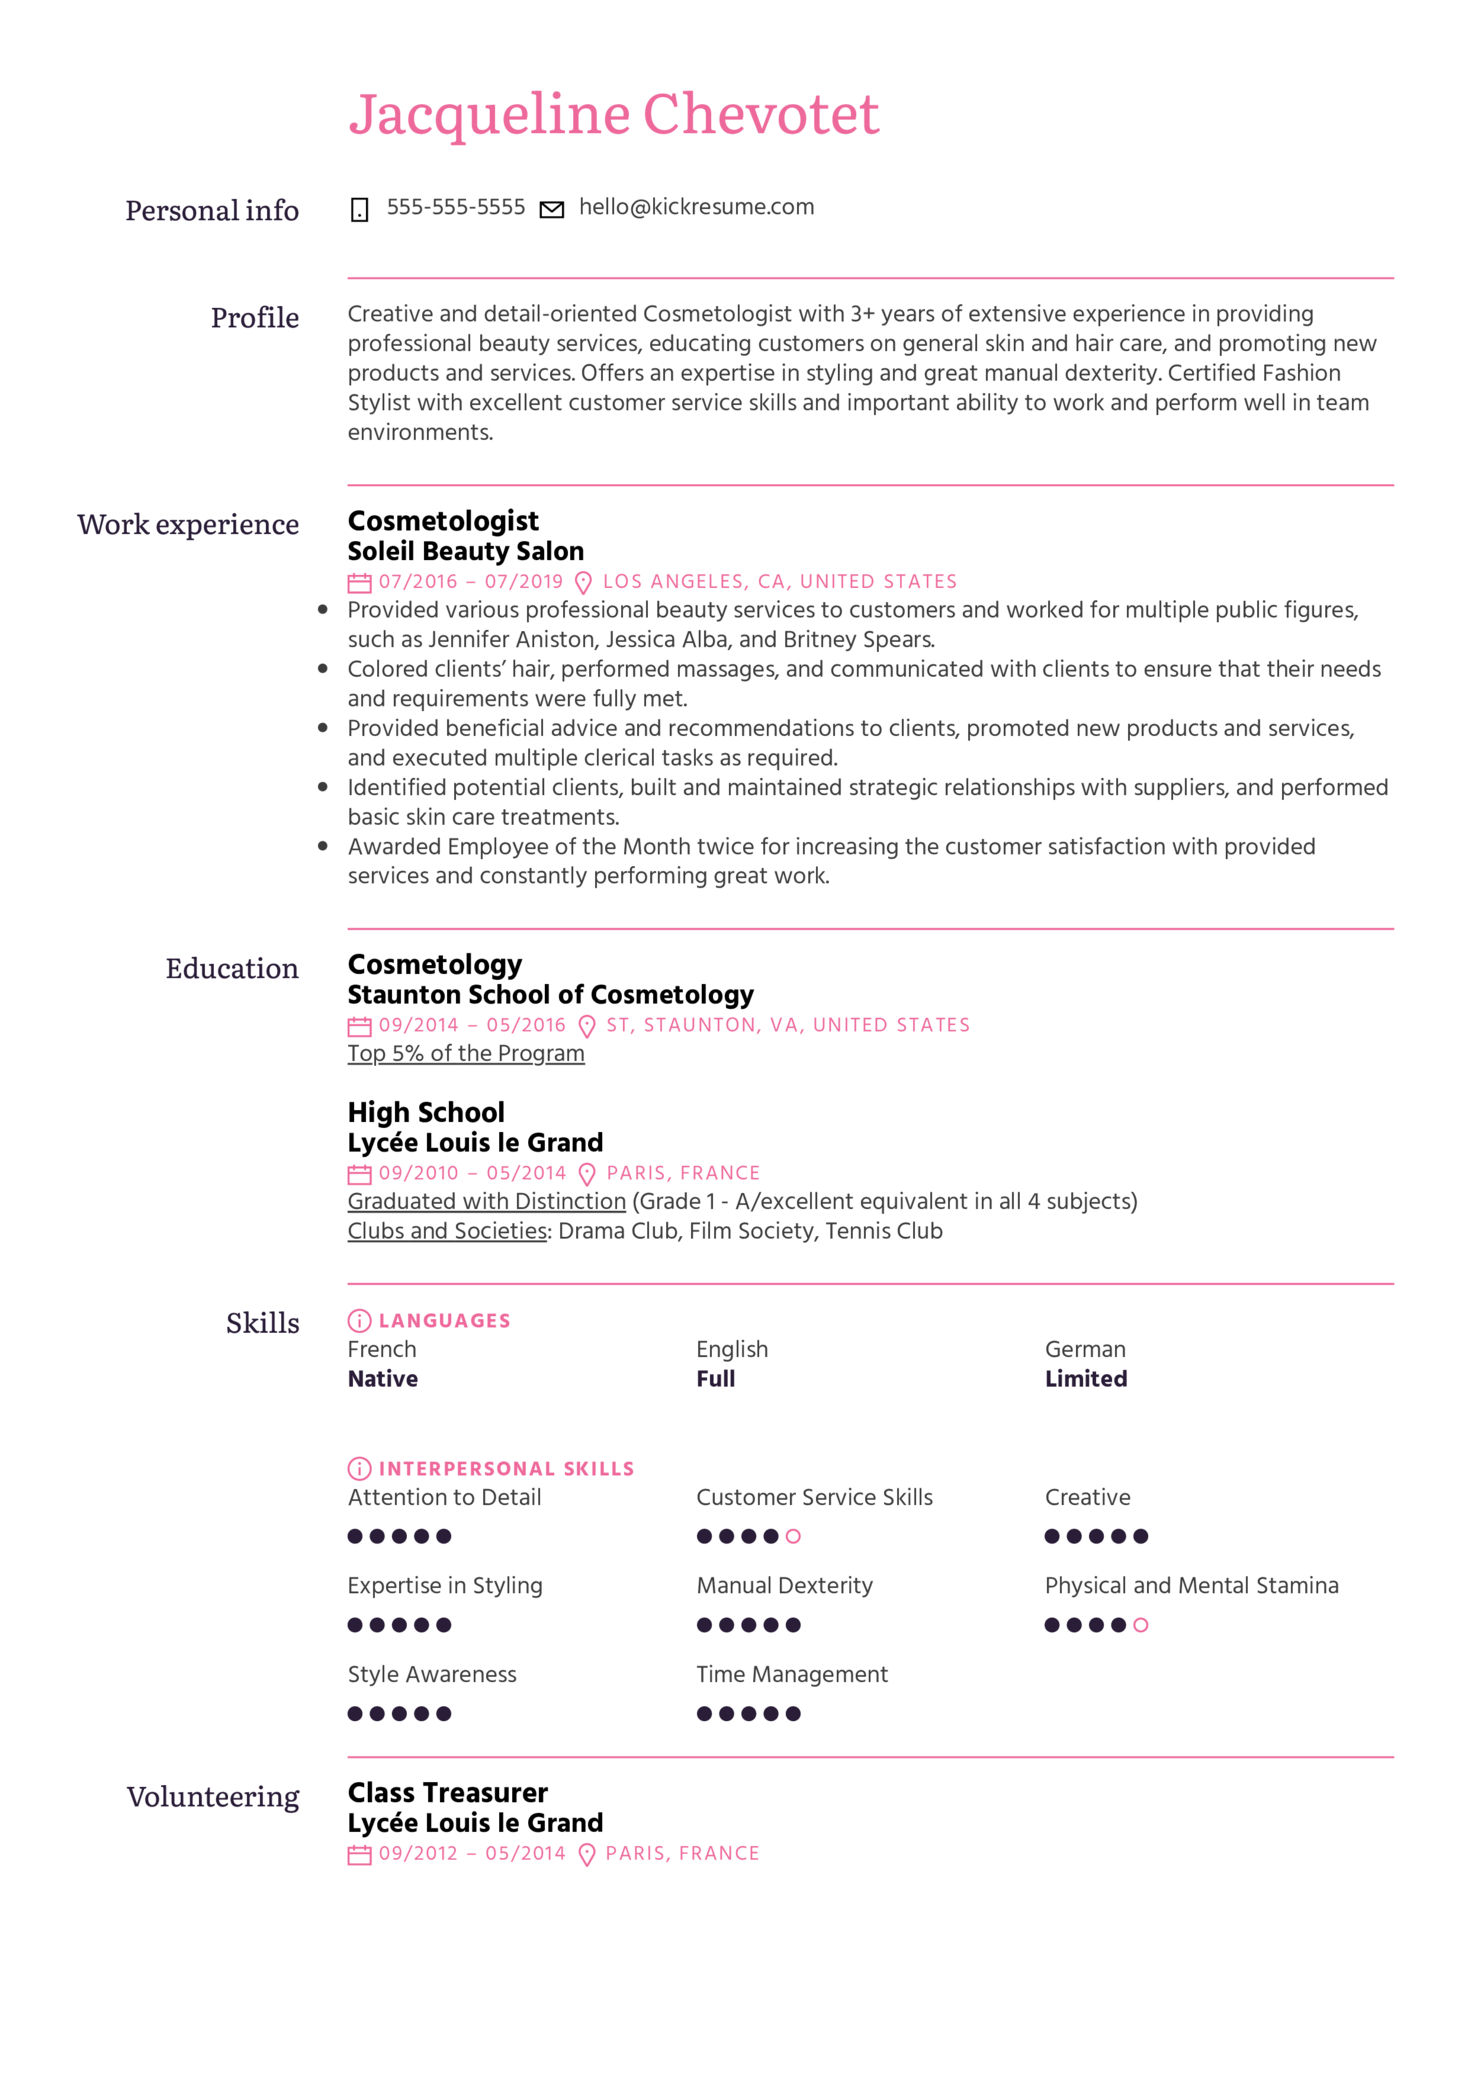 Cosmetologist Resume Example (parte 1)